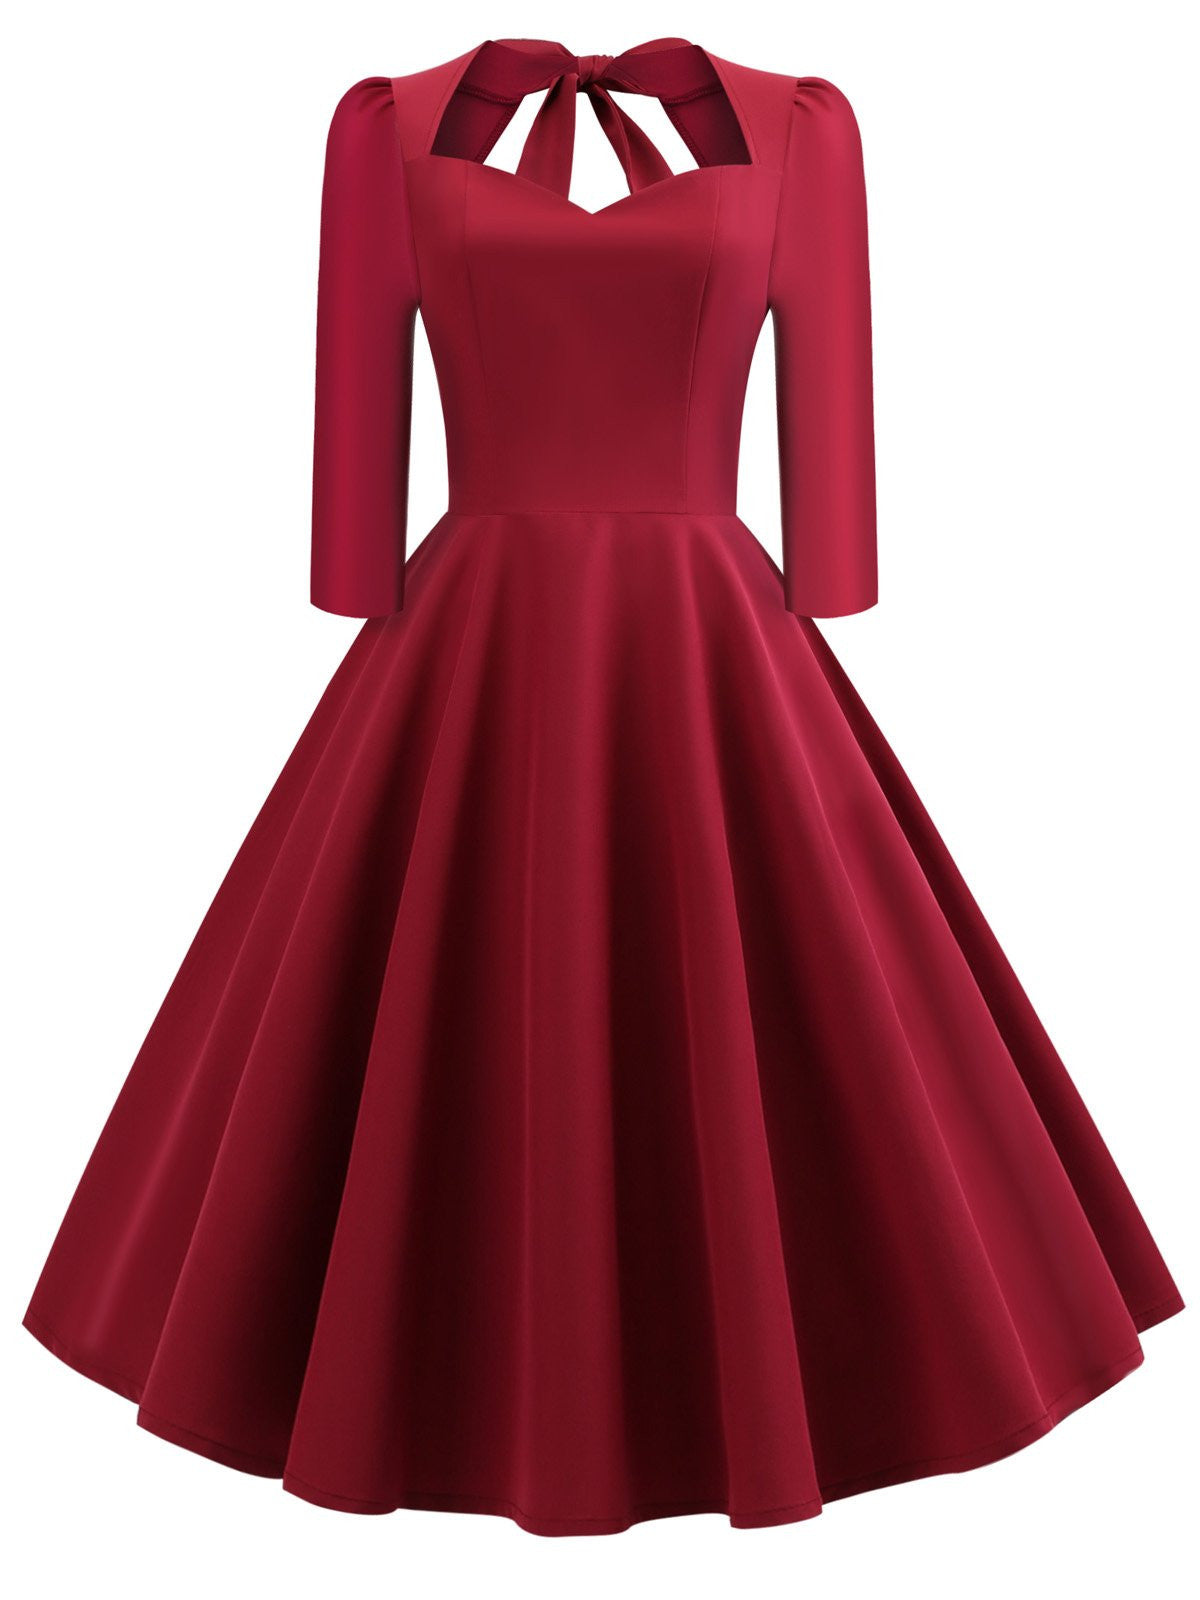 1bbdd5d8f40c 1950s Solid 3/4 Sleeve Dress - Retro Stage - Chic Vintage Dresses ...